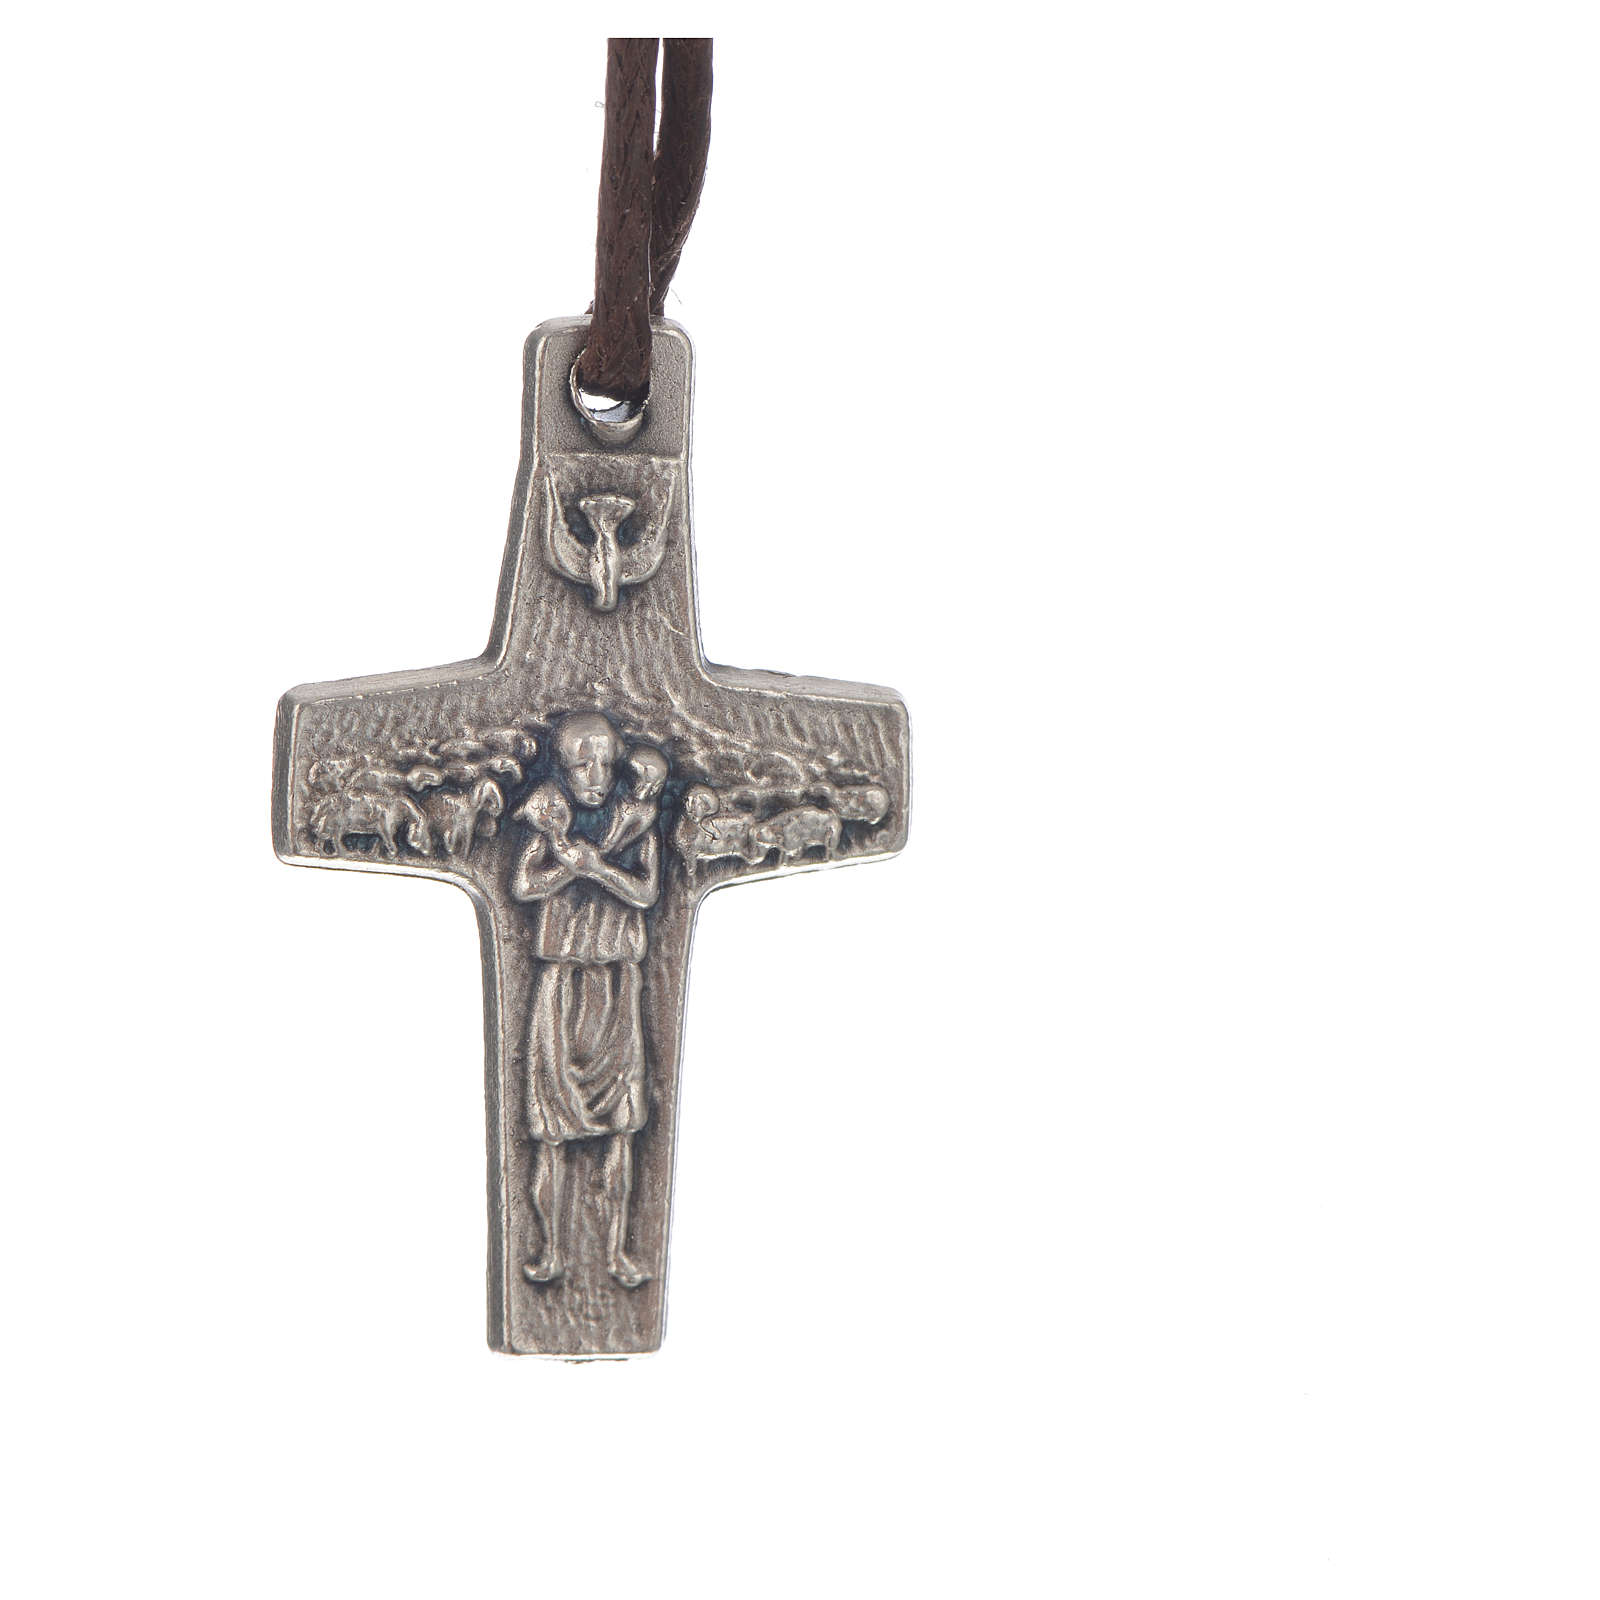 Pope Francis cross necklace metal 2x1.4cm with twine 4